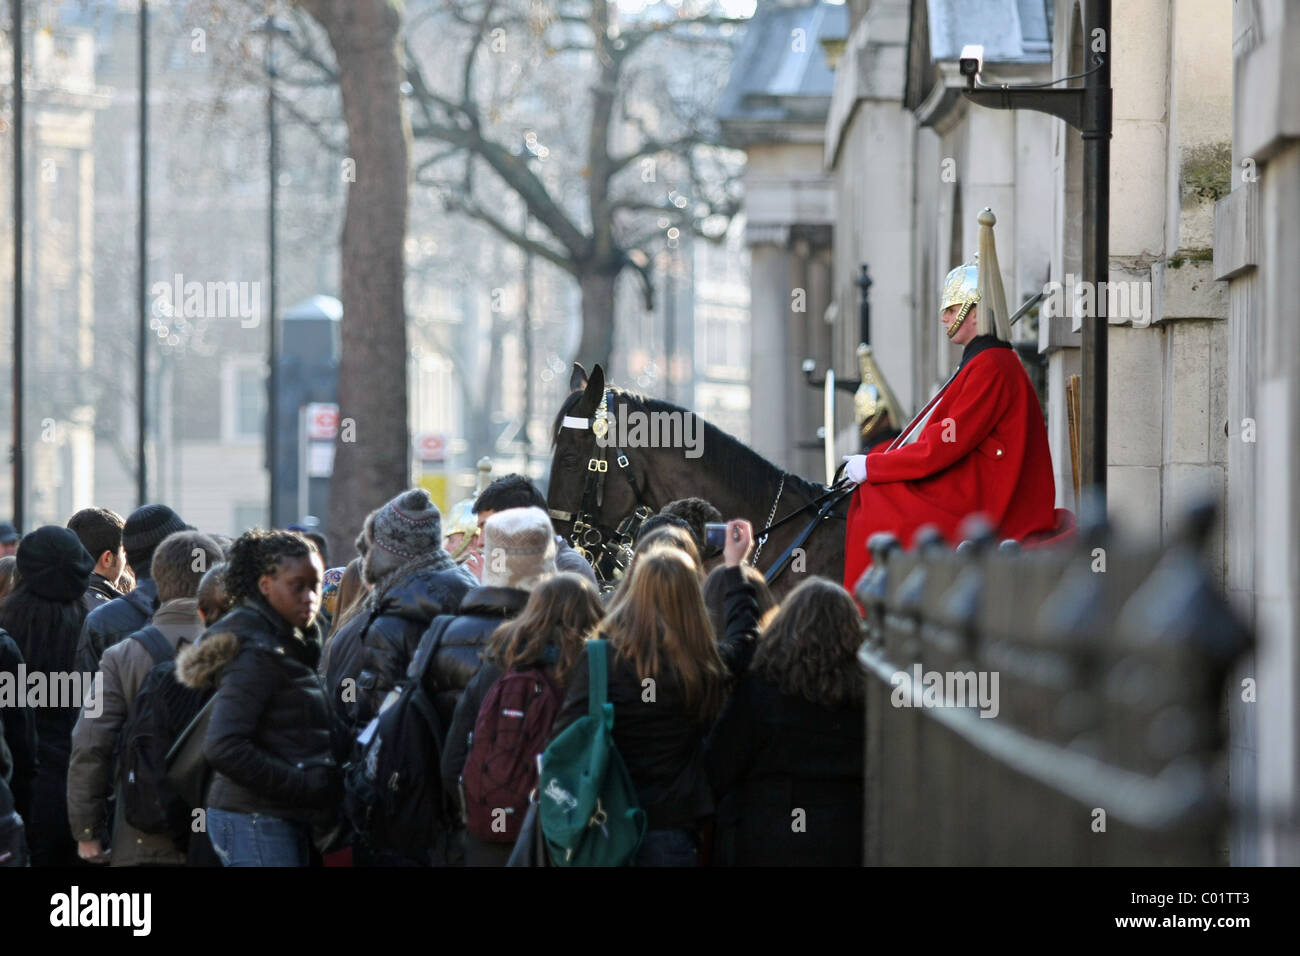 people watching the Queen's Life Guards in Whitehall, London Stock Photo